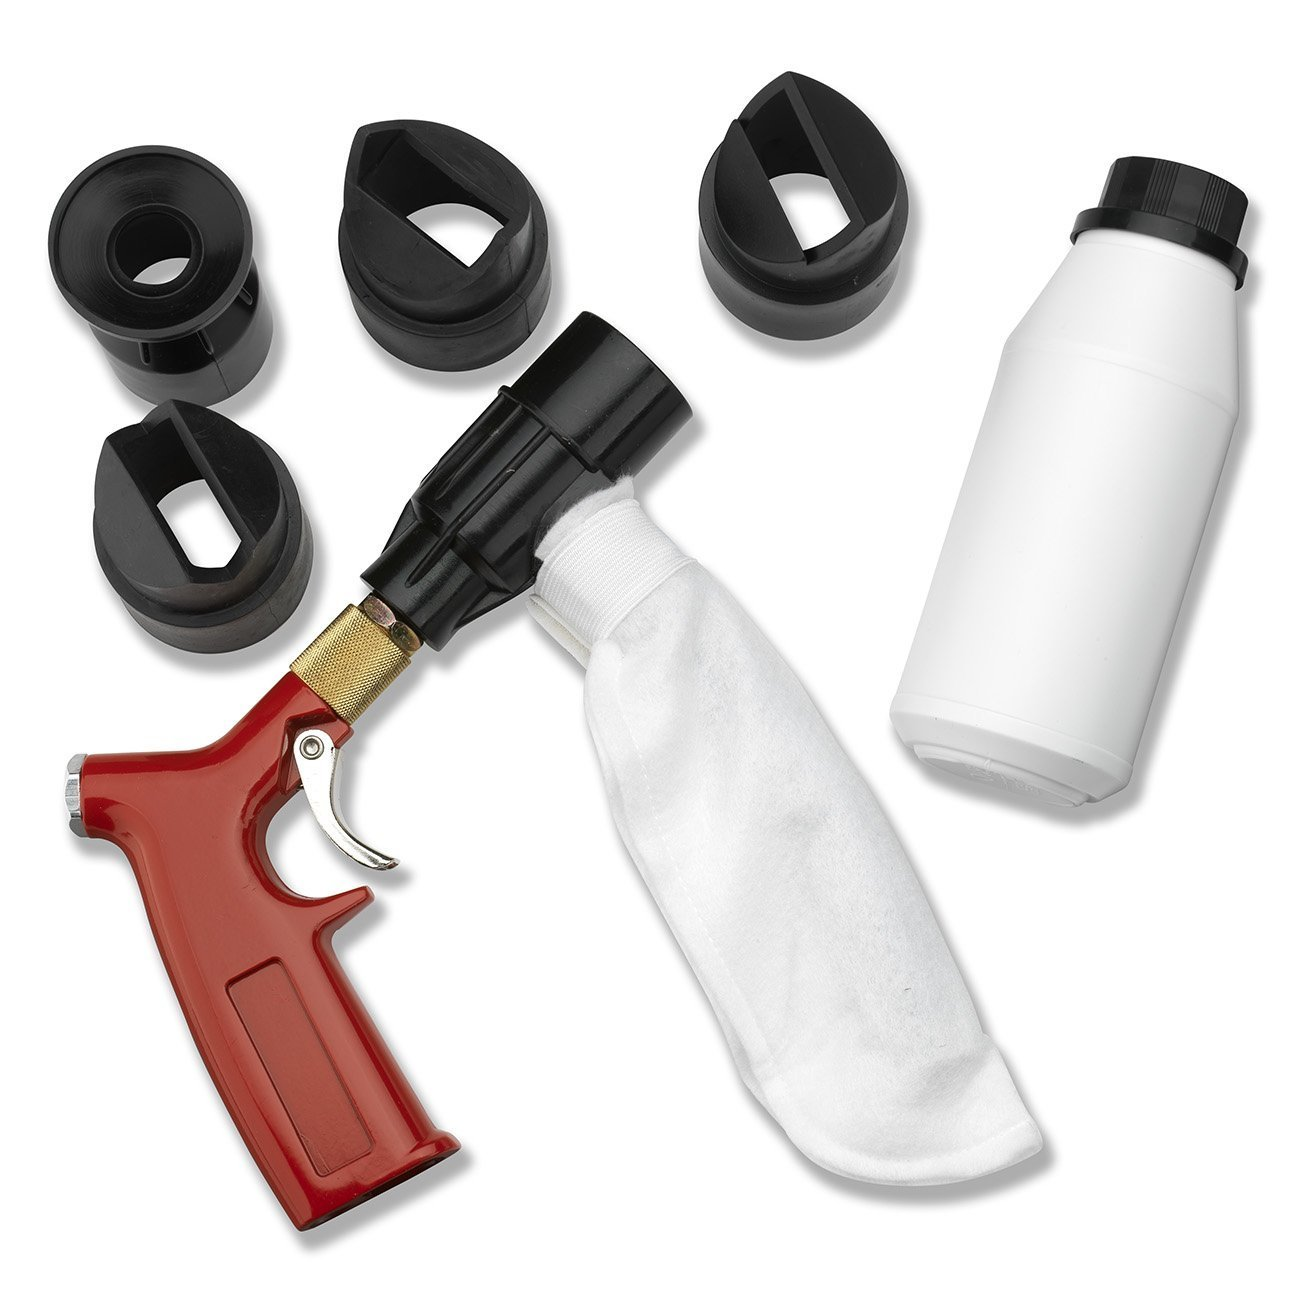 Neiko 30042A Spot Shot Air Sand Blaster Kit, Closed Cycle/Recycling Ridgerock Tools Inc.